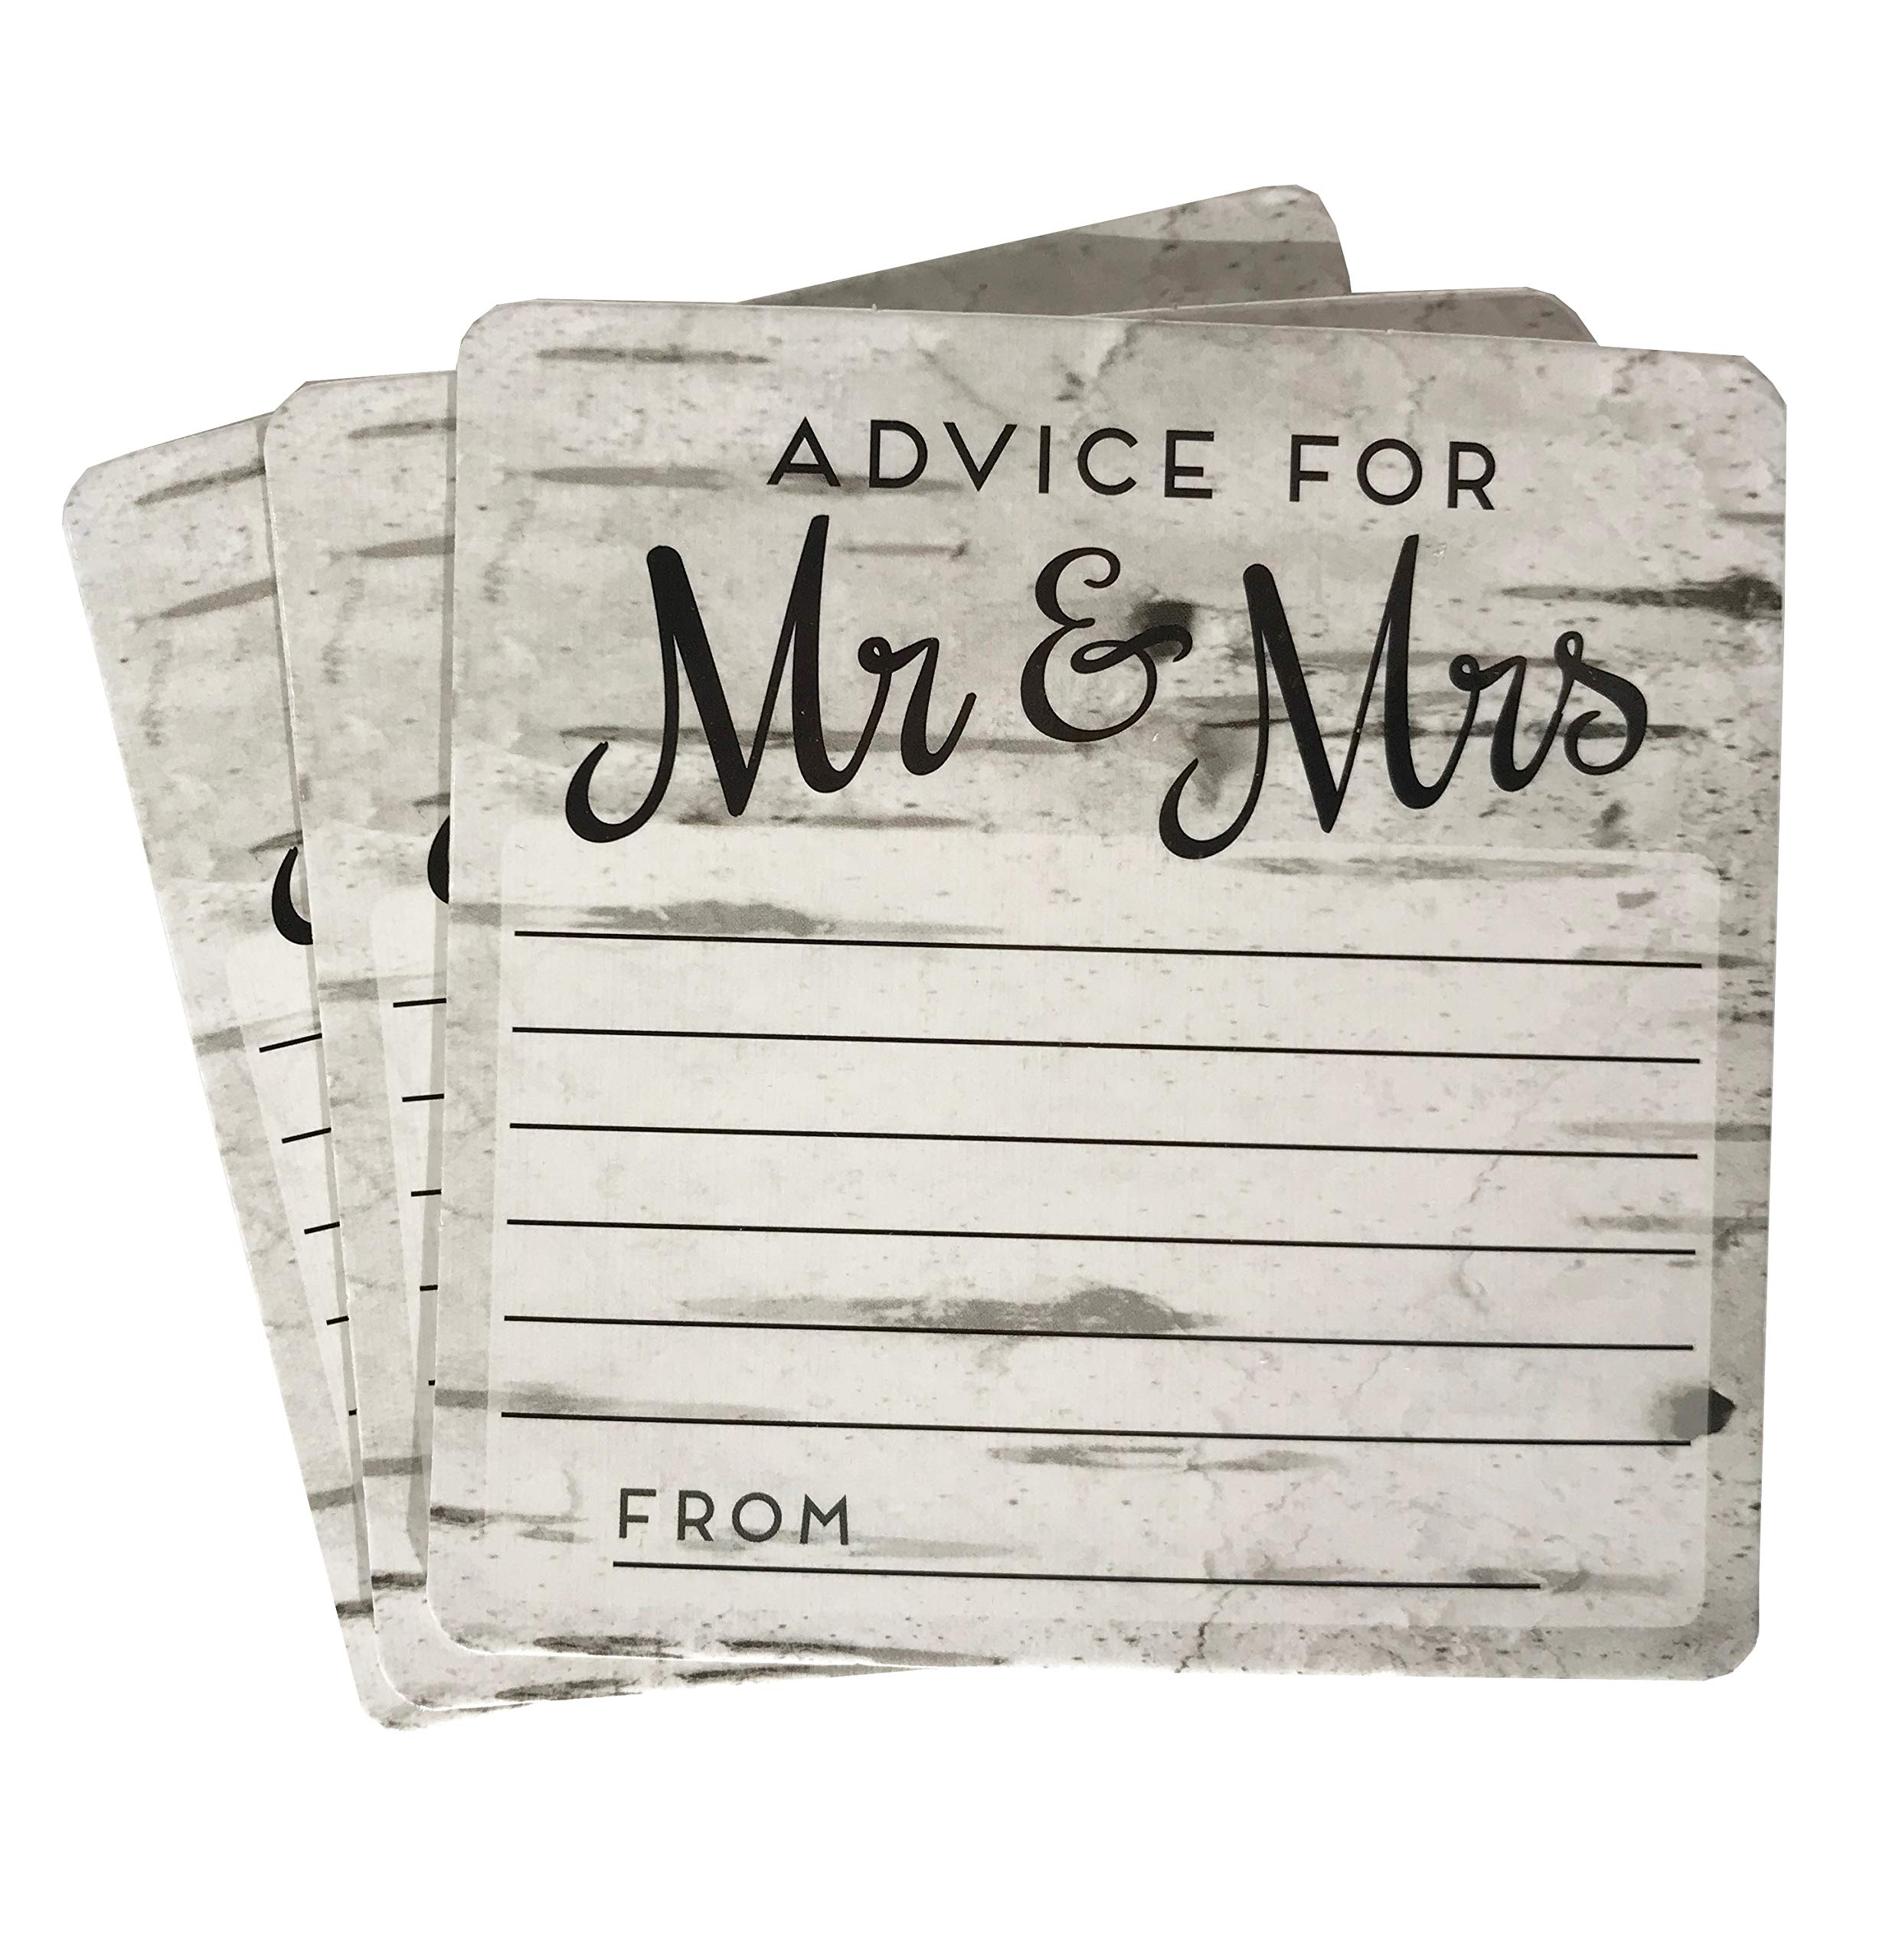 20 4x4 rustic wedding advice well wishes for the bride and groom card coasters